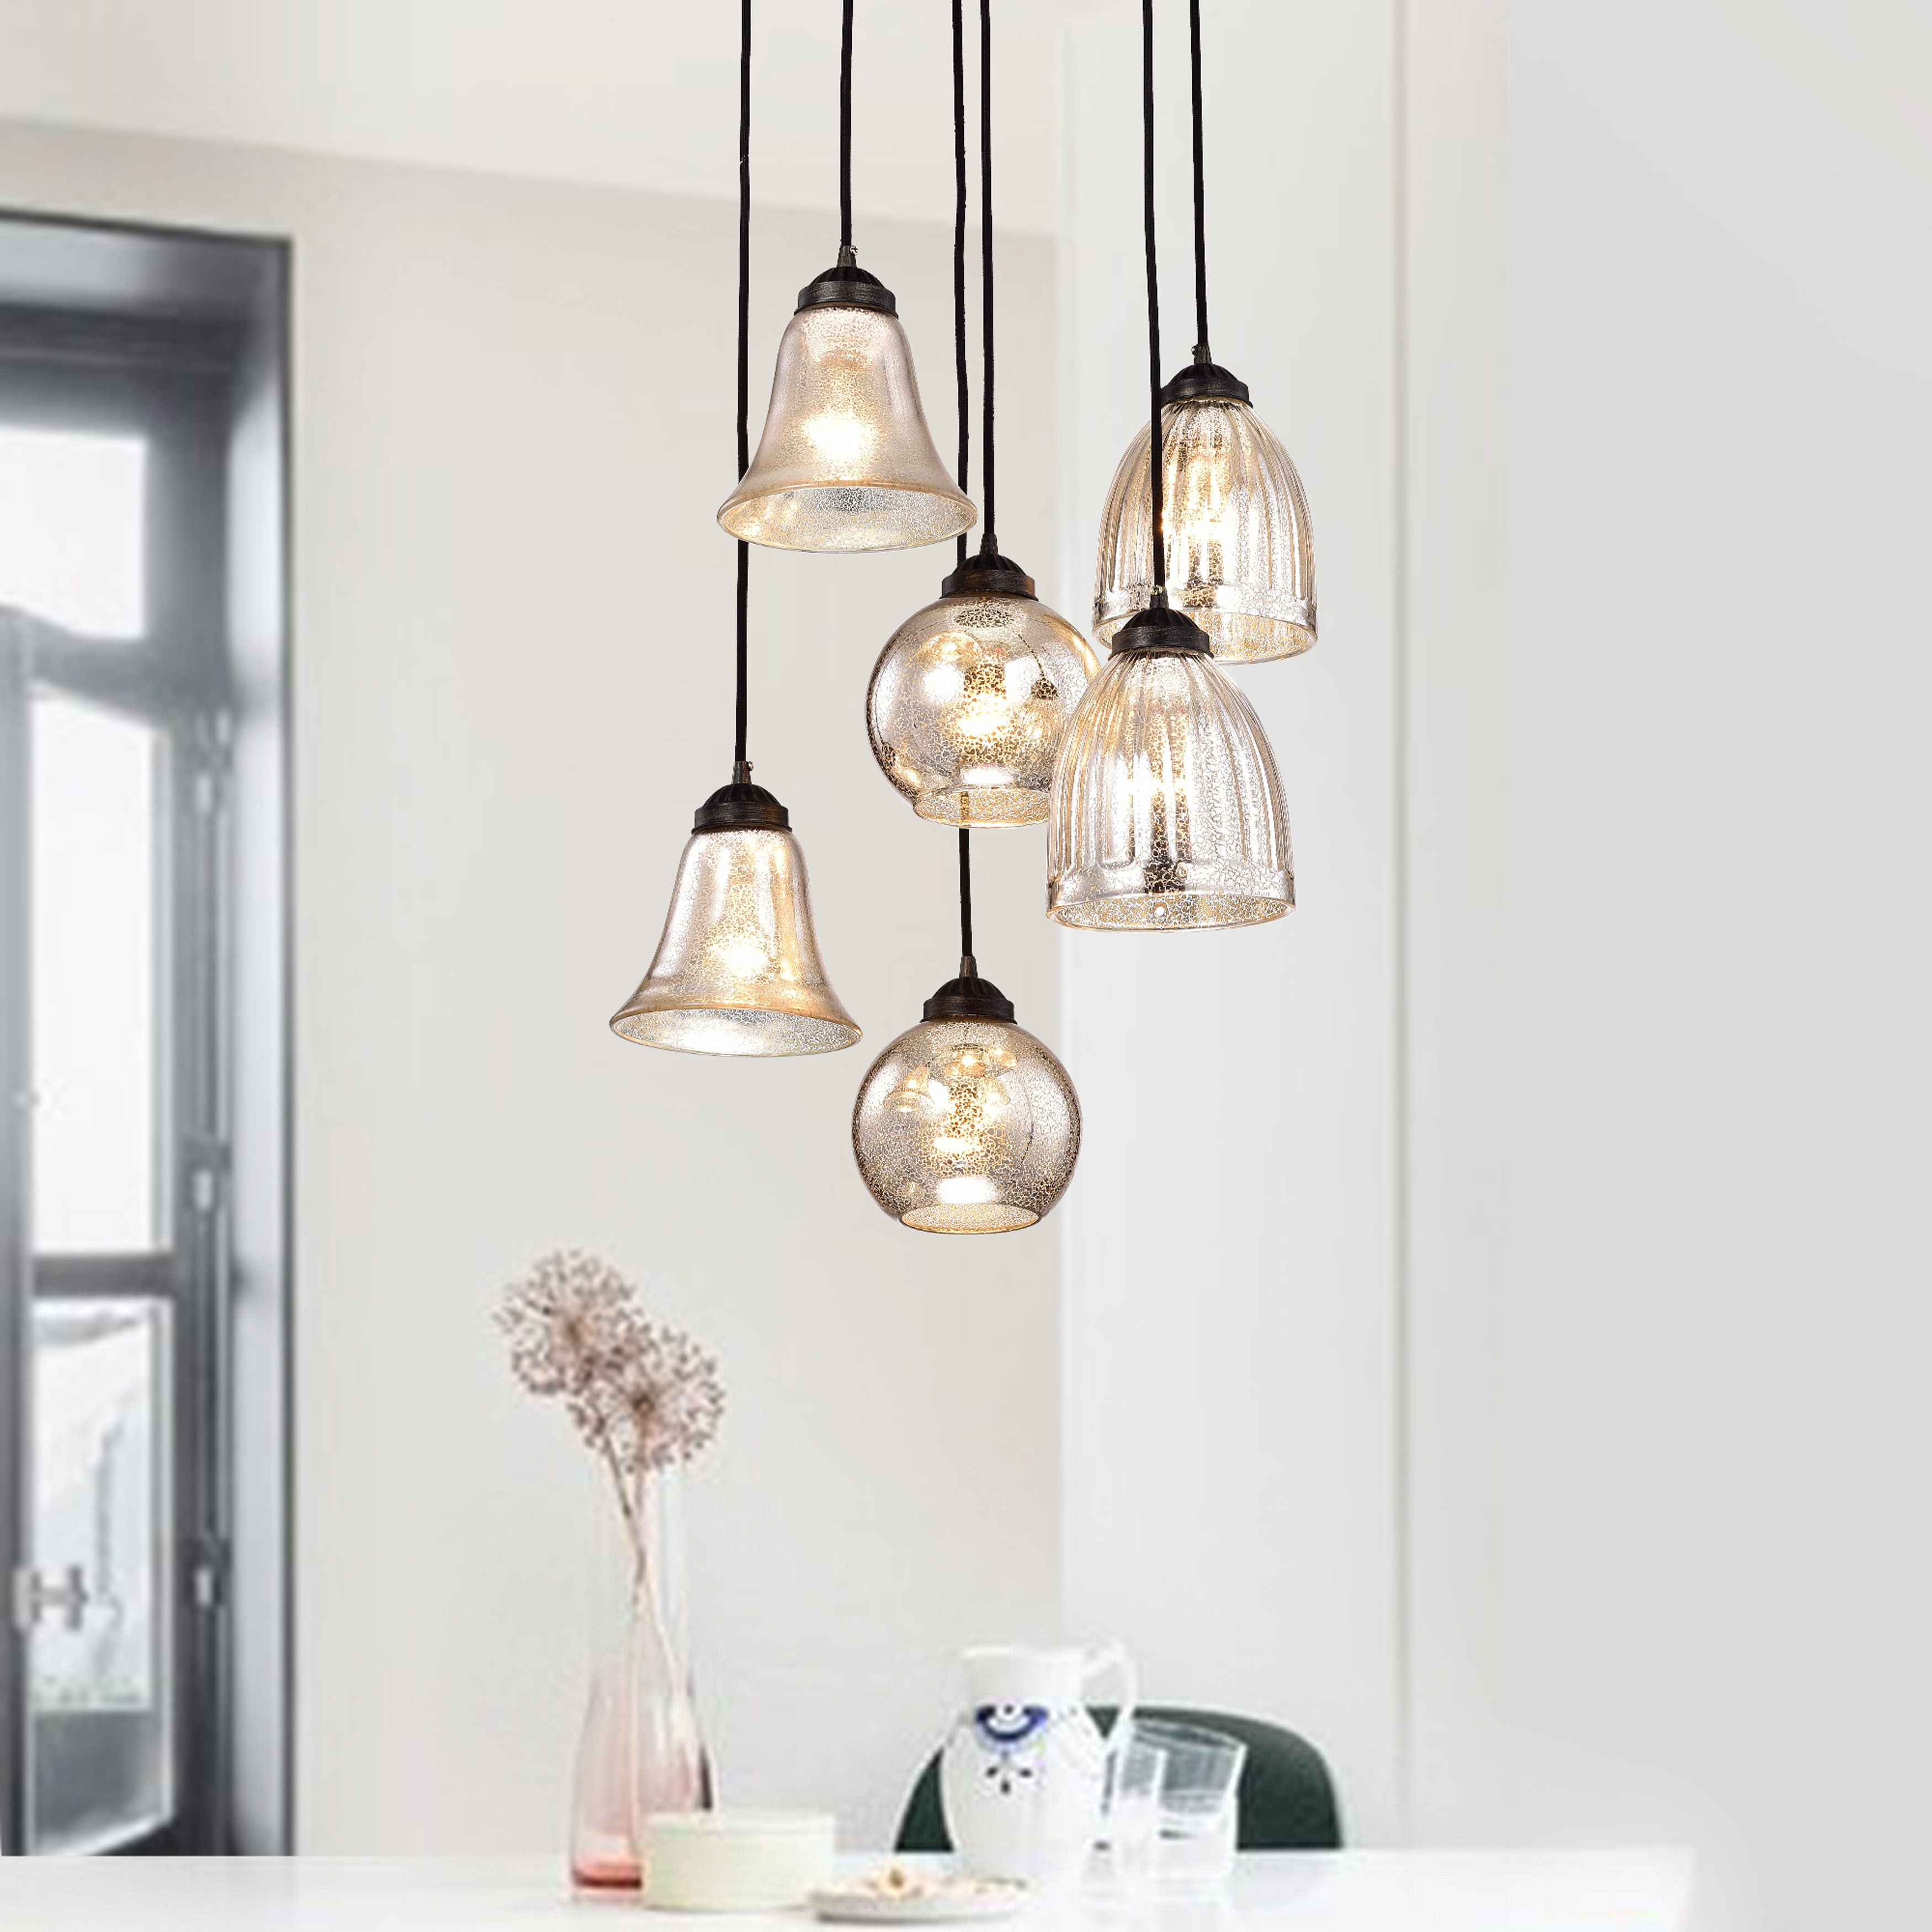 or new pendant legend chandelier ceiling finish modern flush mount lighting hanging fixture crystal chrome